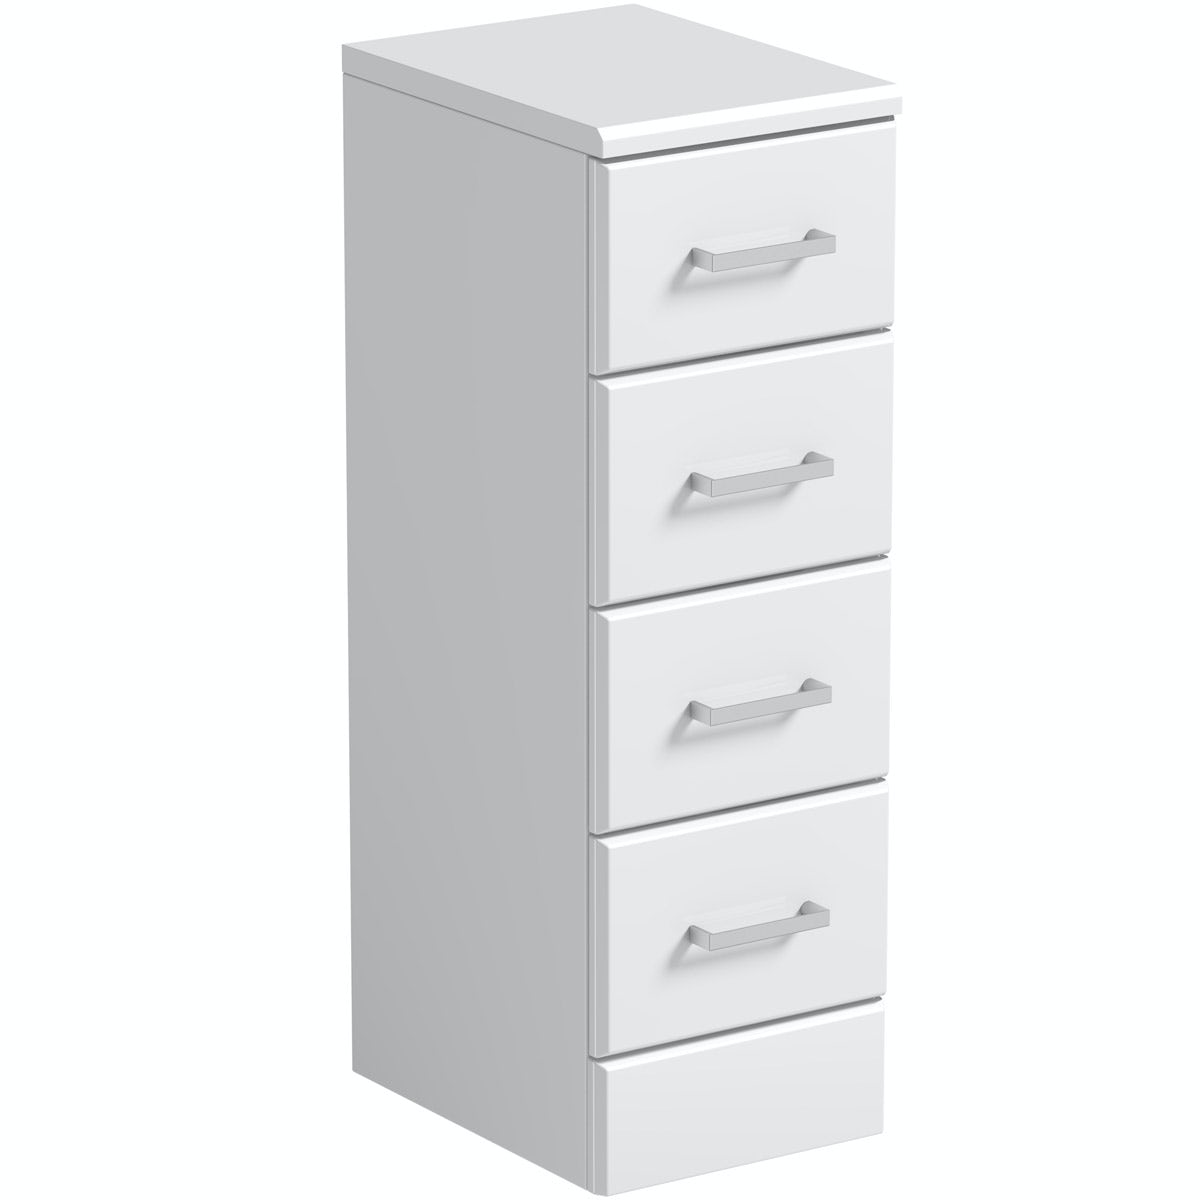 Orchard Eden white multi drawer unit 330mm